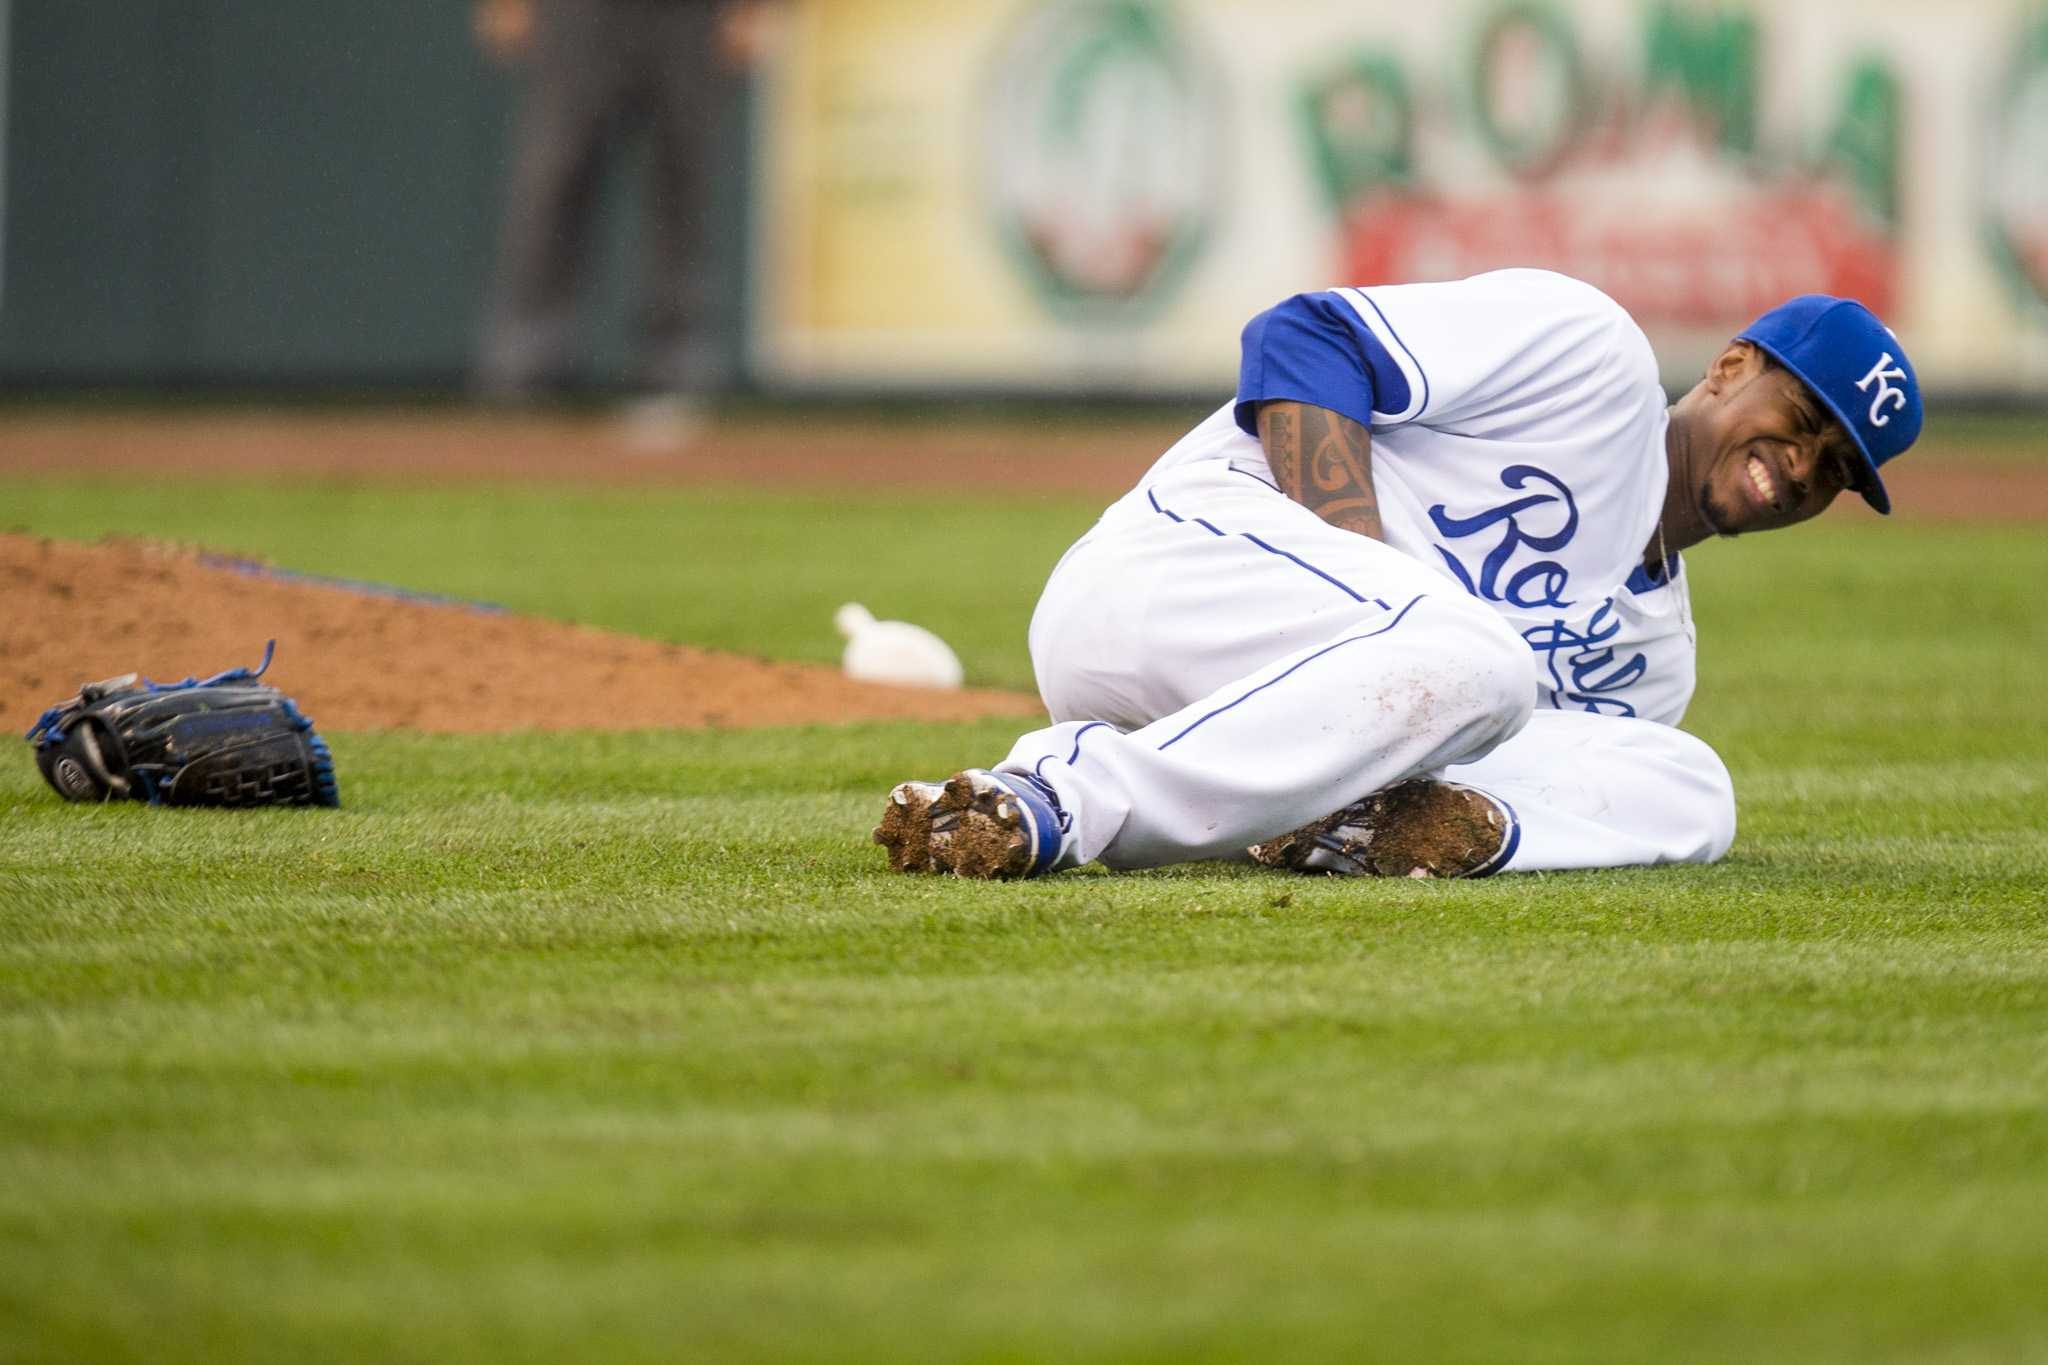 Royals Pitcher, Yordano Ventura falls to the ground during a game against the White Sox. photo courtesy of tribune news service